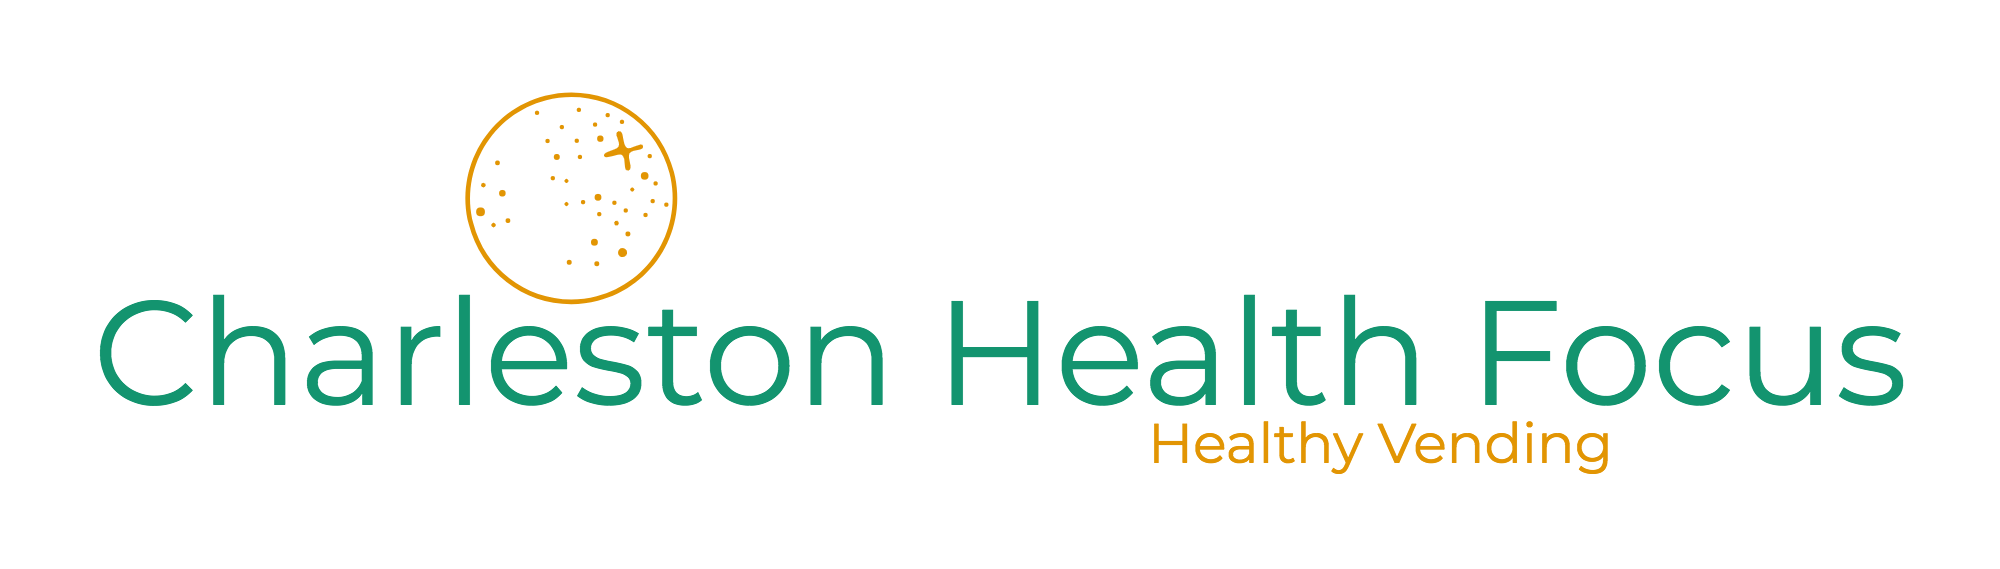 Charleston Health Focus-logo.png